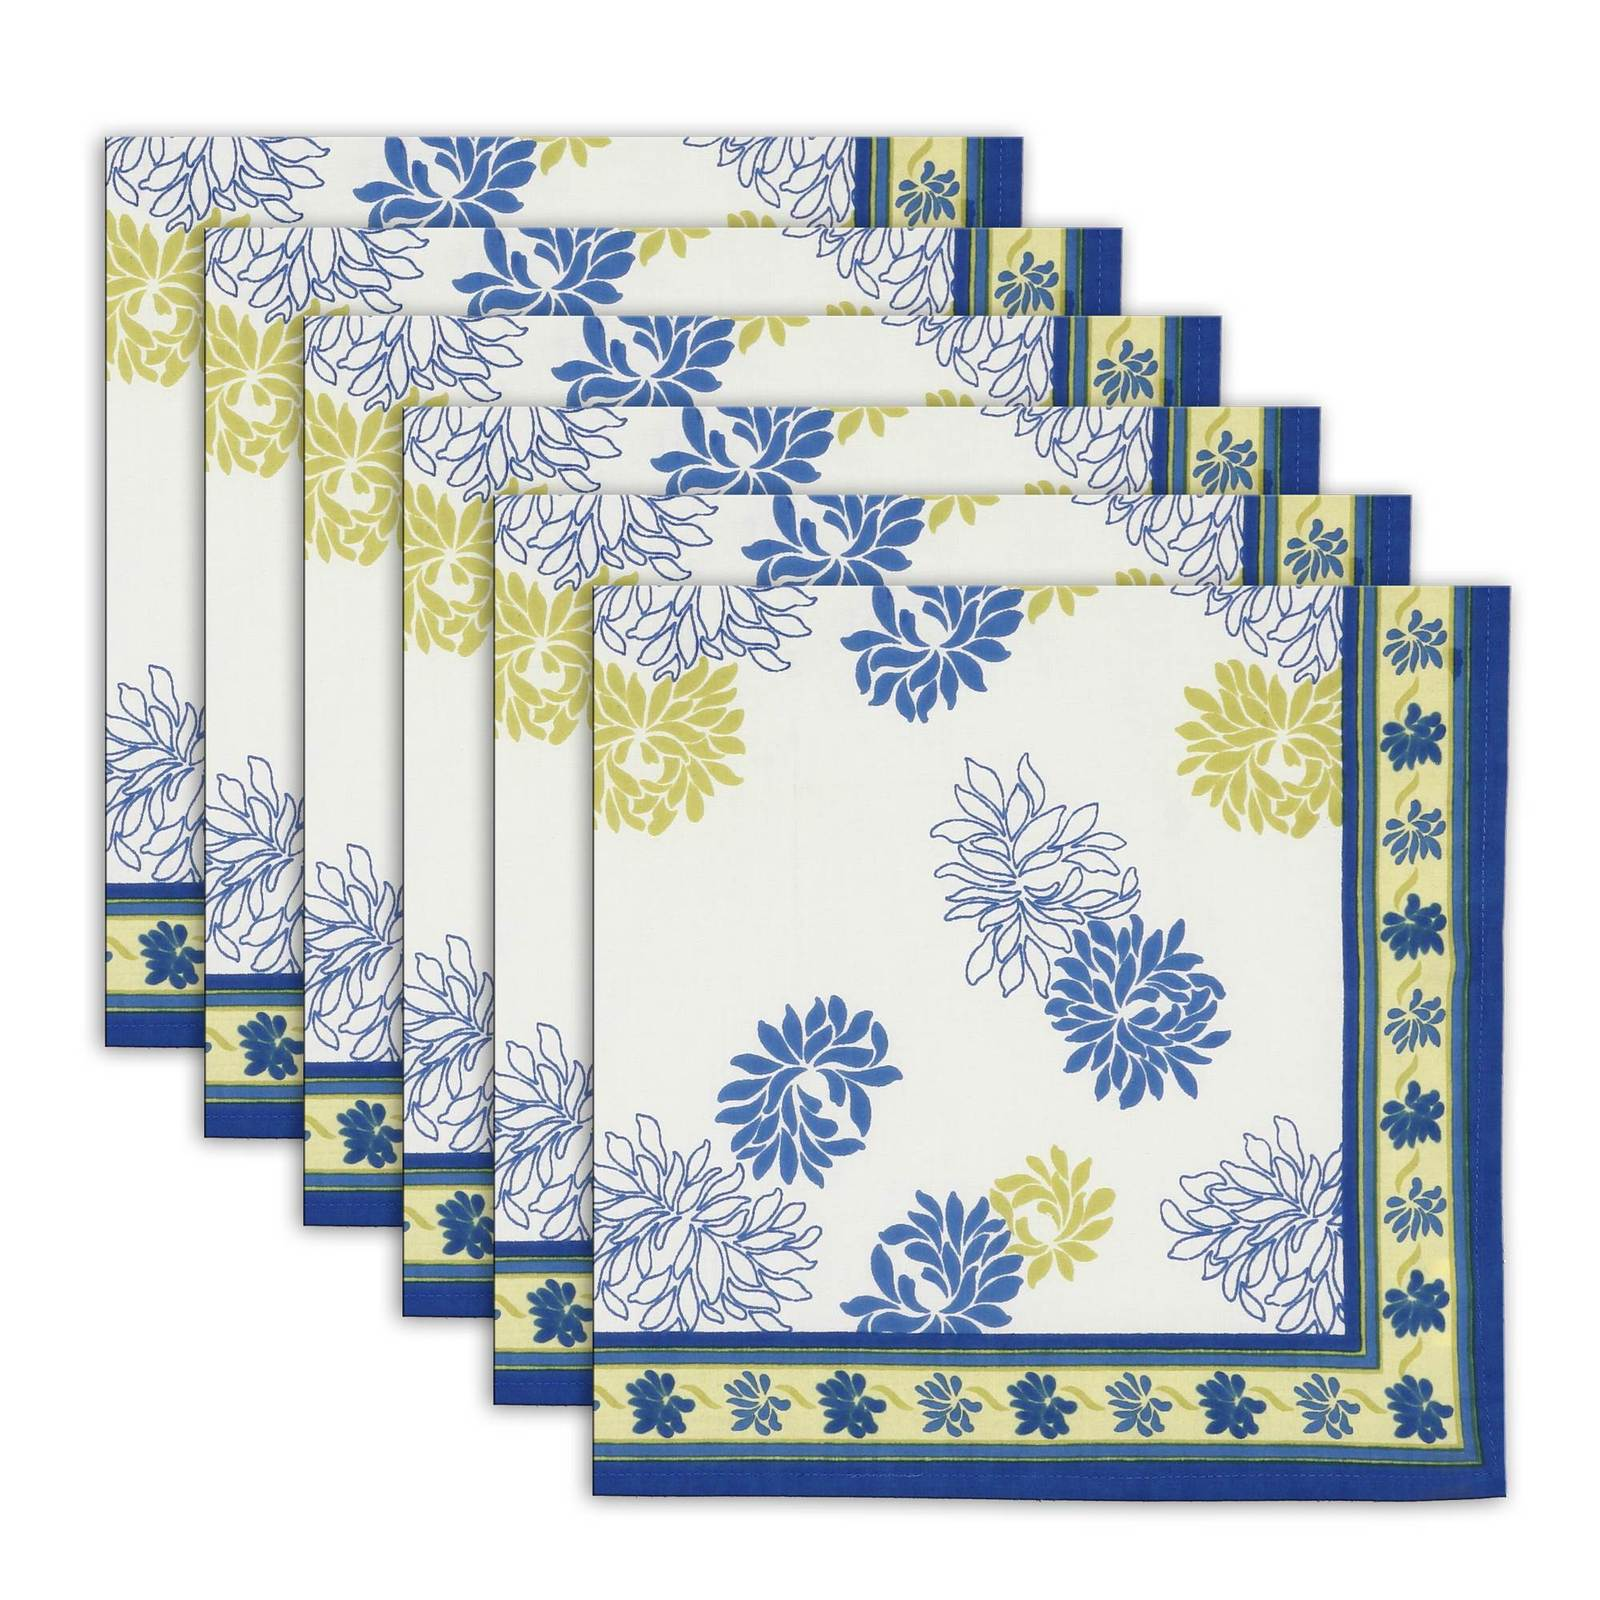 Napkin Set of 6 Cotton Floral Designs Indian Washable Fast 20 Inches